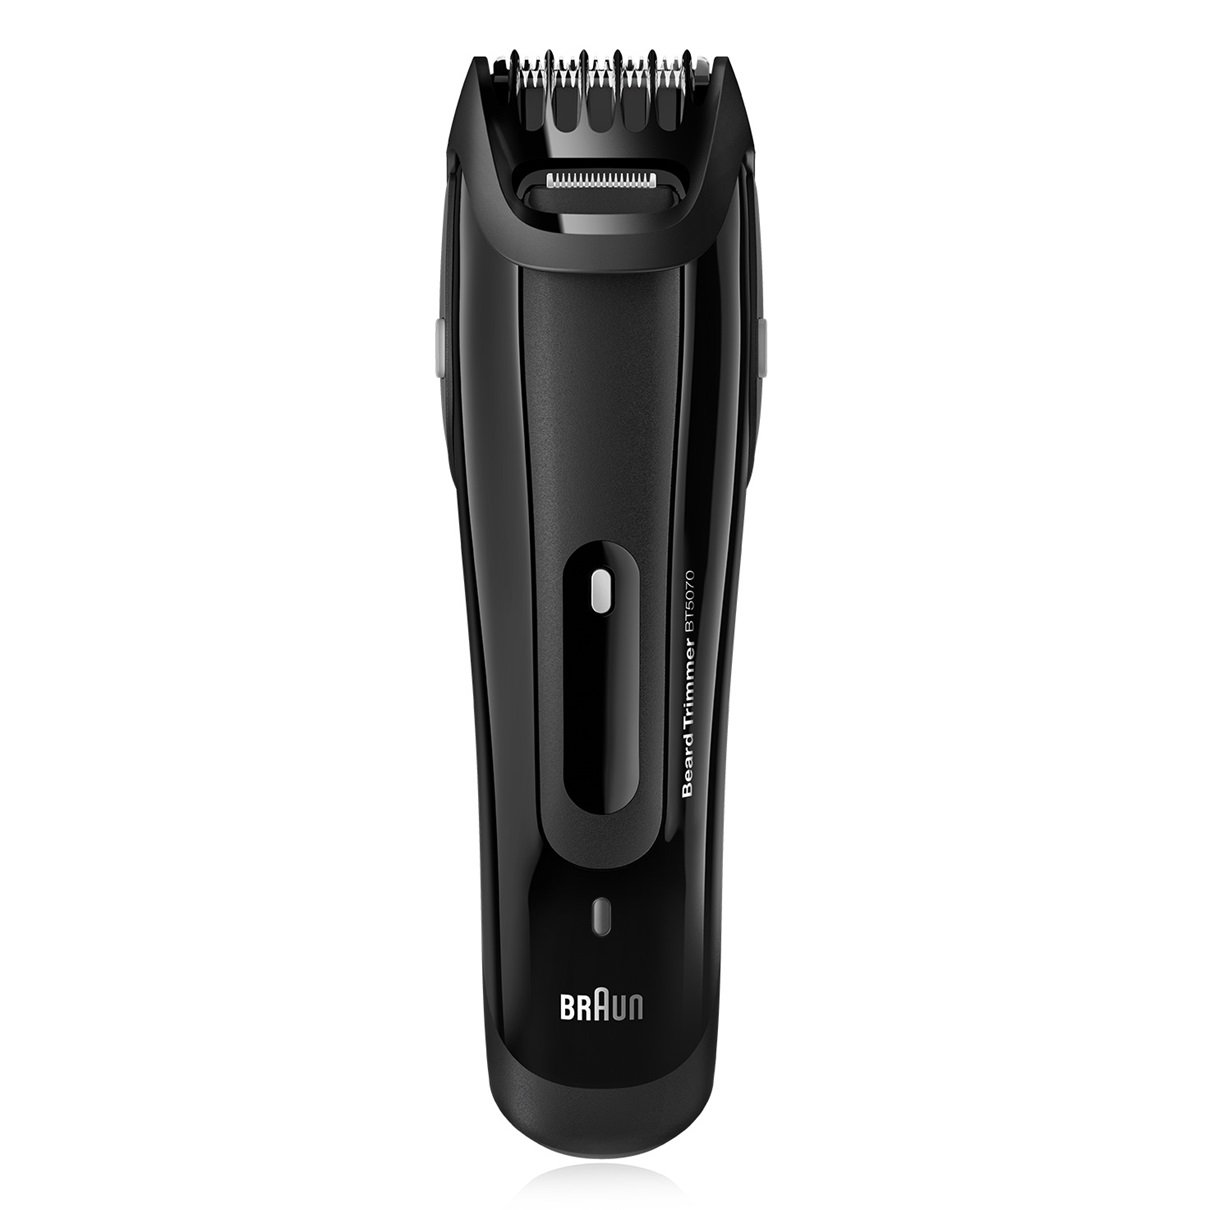 Braun WORLWIDE VOLTAGE Beard Trimmer with All NEW Click&Lock Technology, BONUS FREE Body Spray and Travel Pouch Included